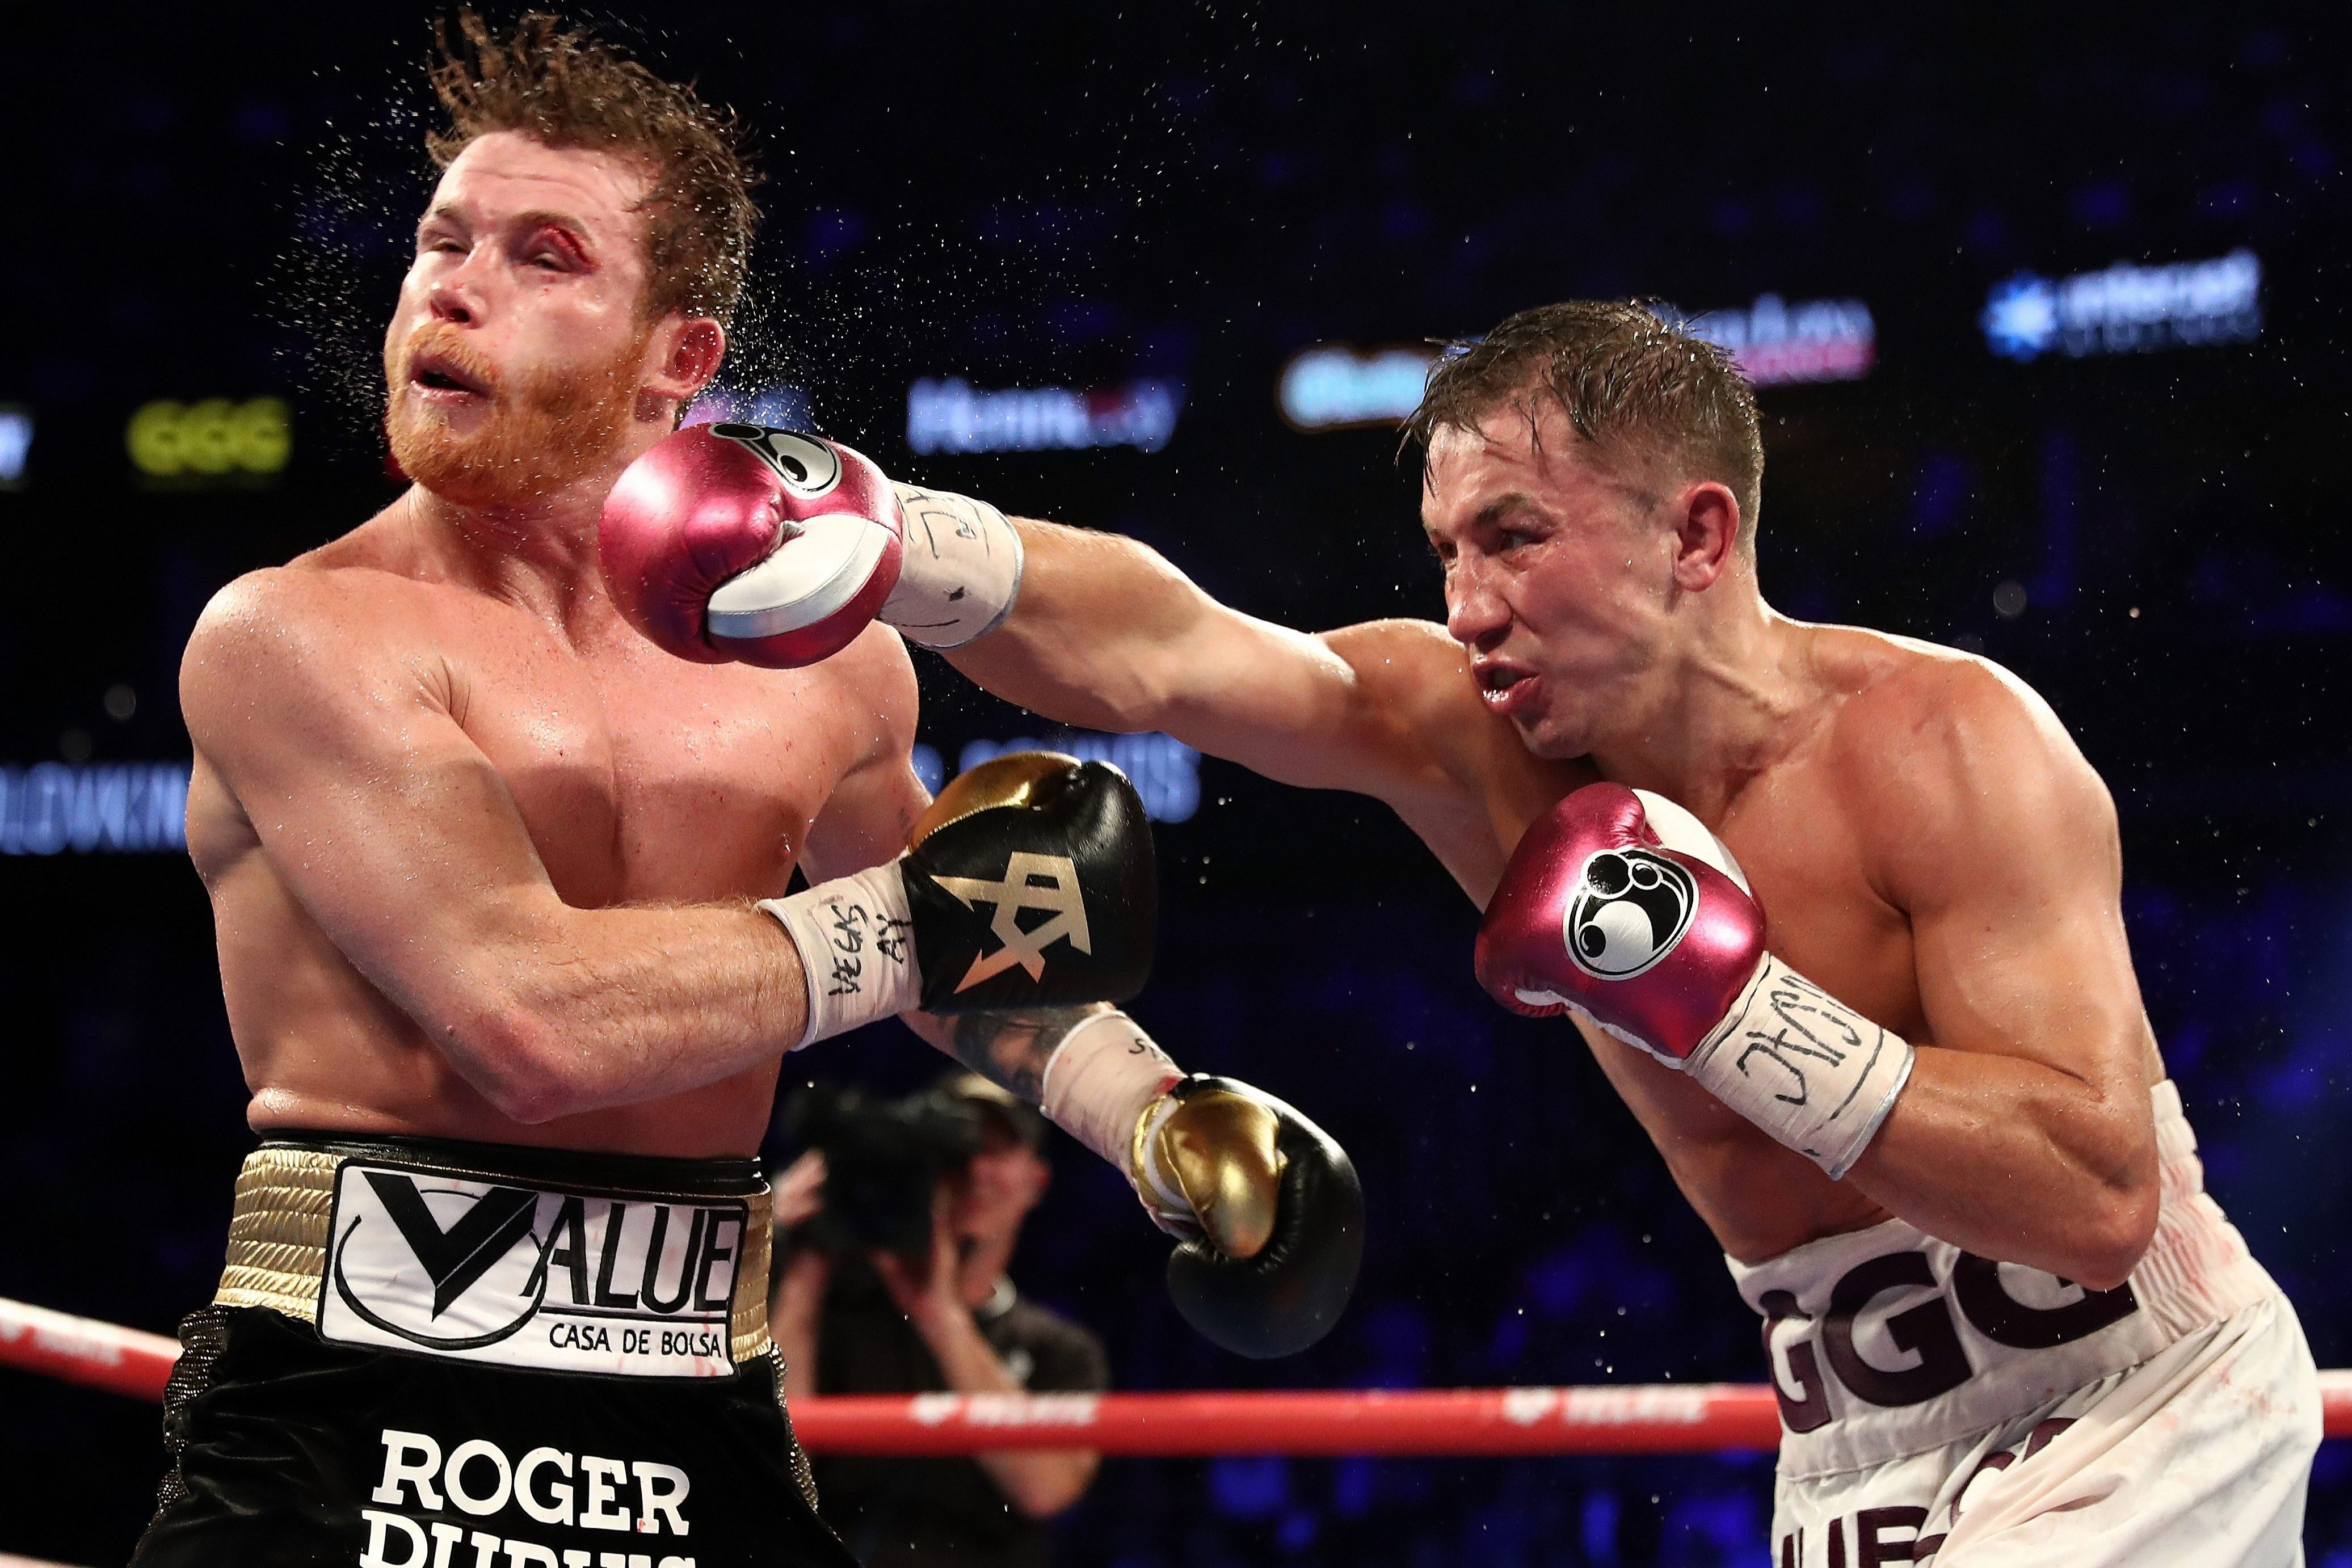 Gennady Golovkin set for epic trilogy fight with Canelo this September after signing multi-million pound deal with DAZN